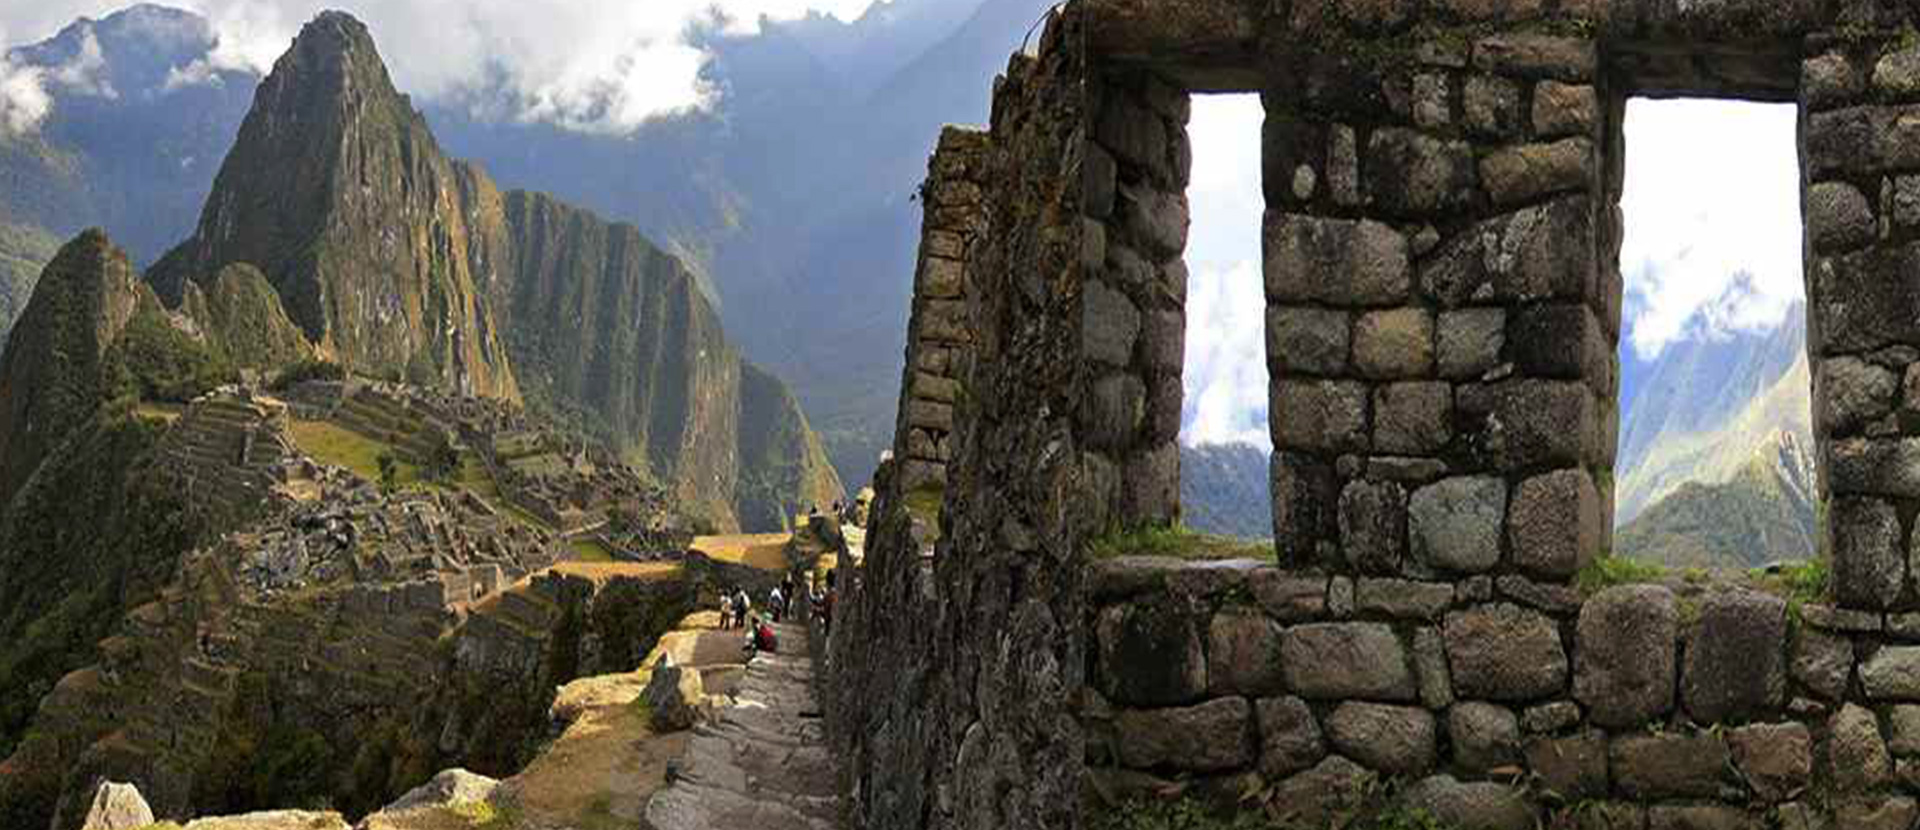 Tours Machu Picchu Full Day -      INKA JUNGLE TREKS